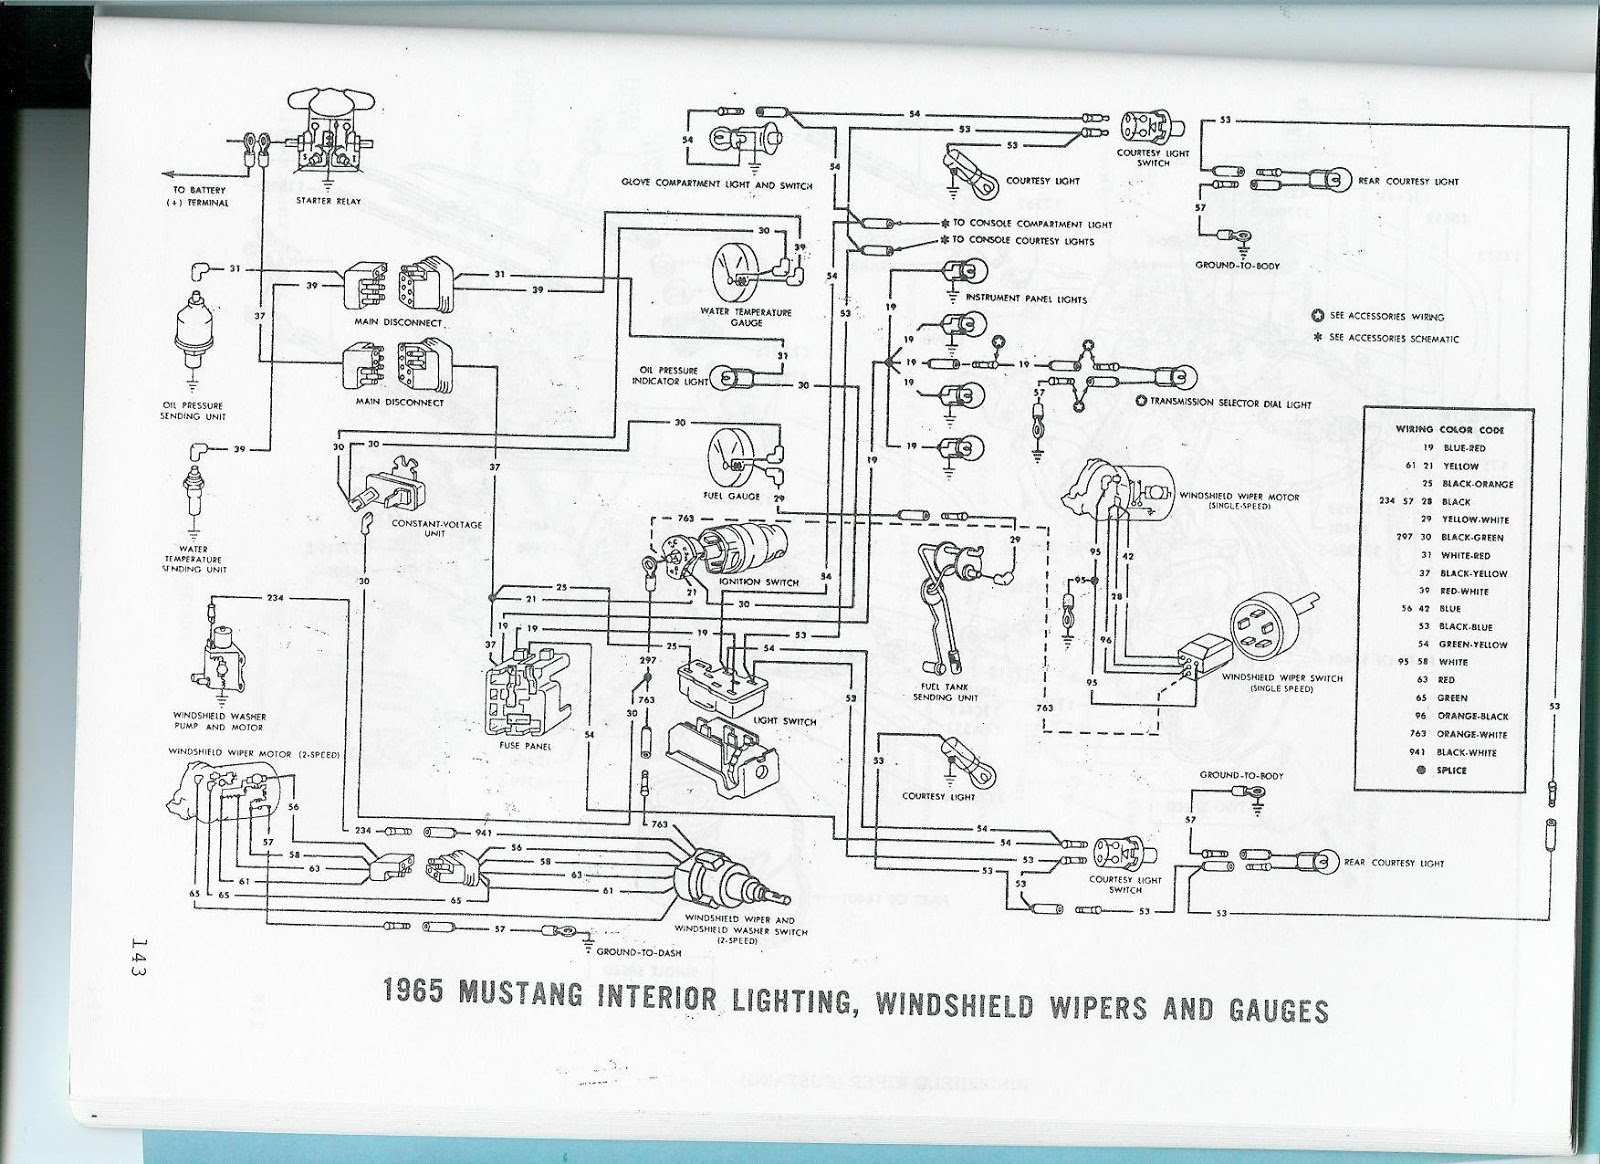 1967 mustang center console wiring diagrams free download daily 1966 Mustang Manual Transmission Console